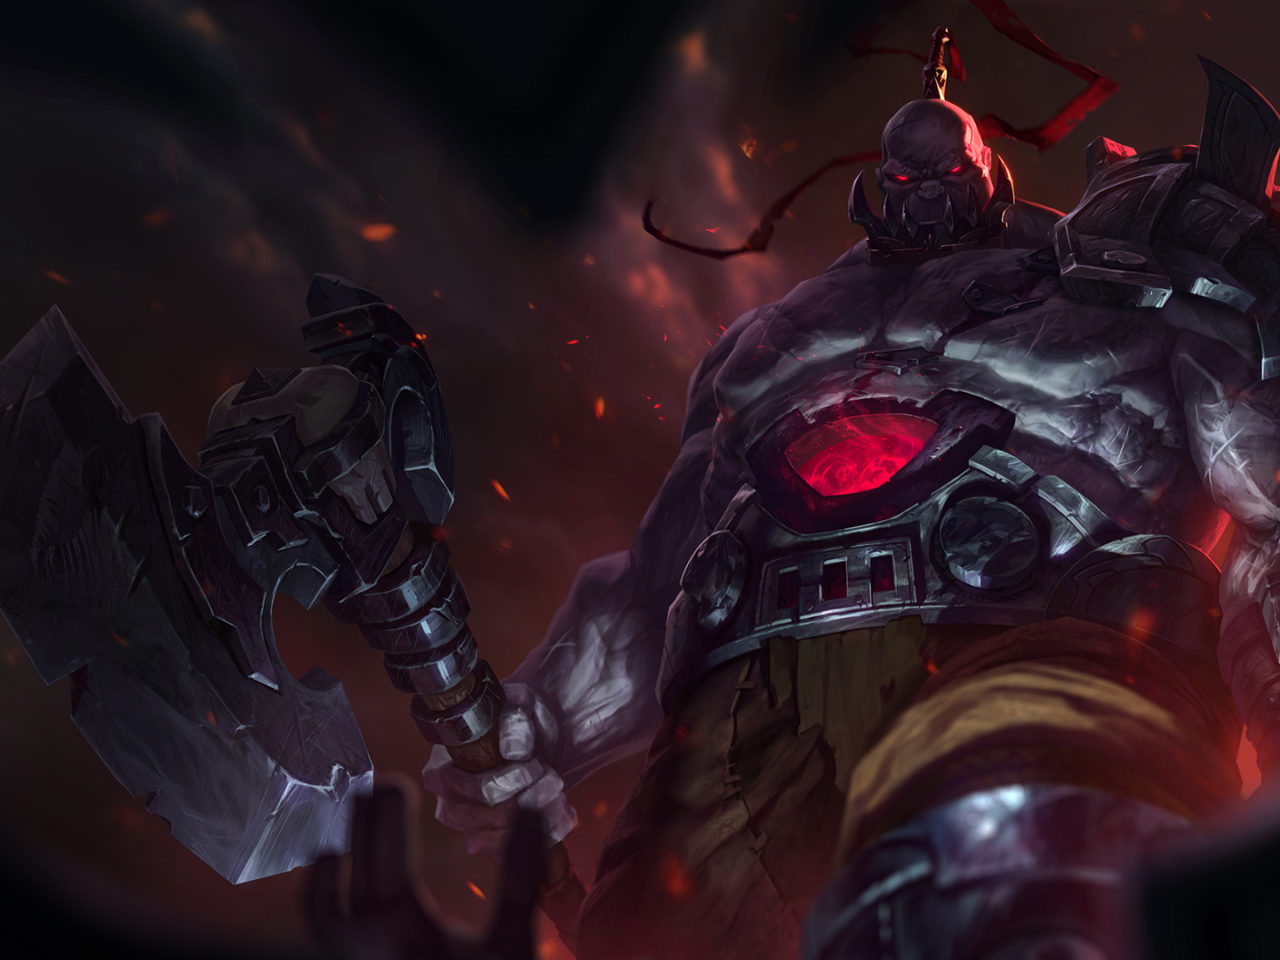 Download Wallpaper Iphone X League Of Legends Warriors Sion Armor Battle Axes Hd